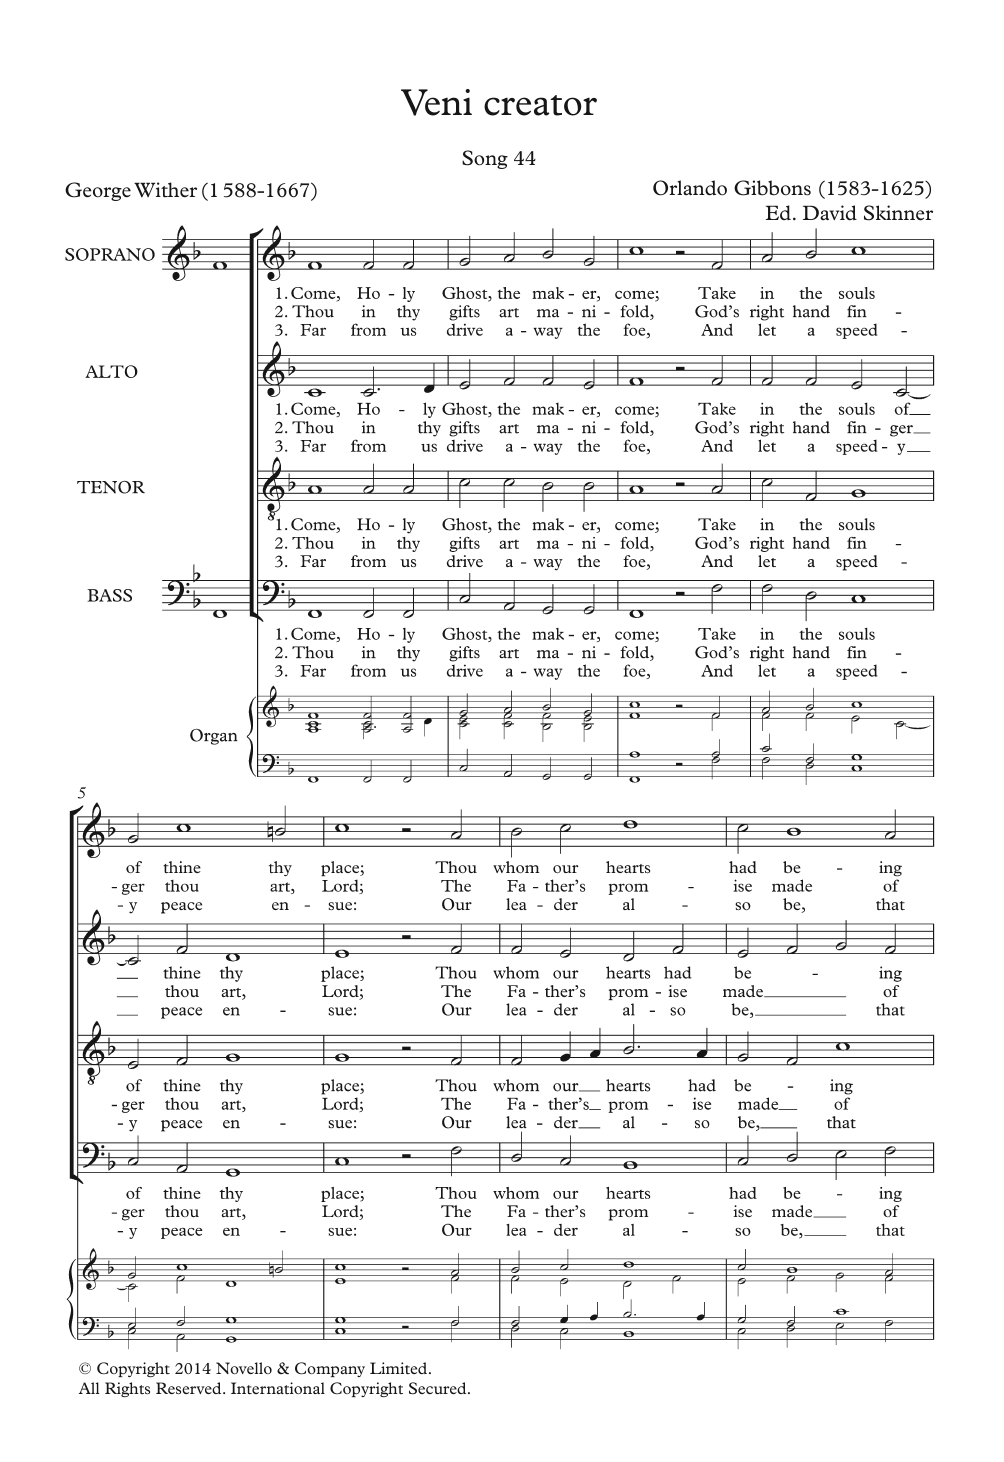 Veni Creator Sheet Music